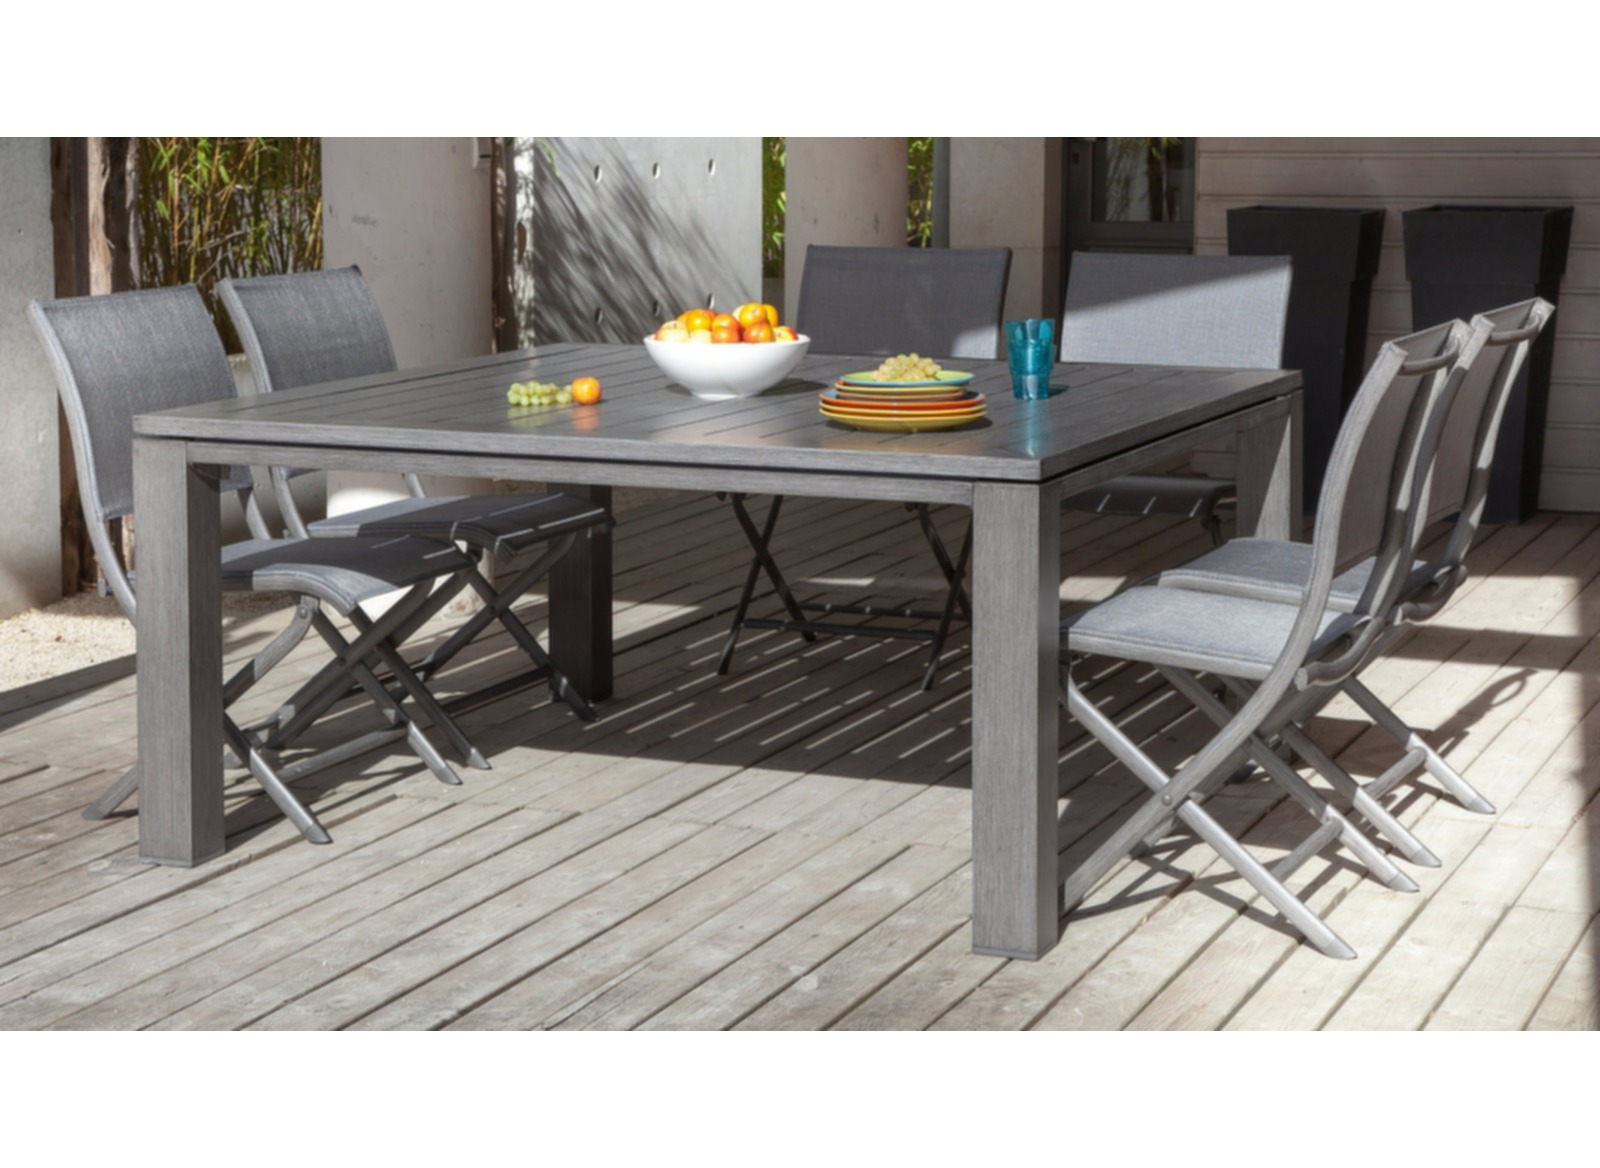 Table carr e 8 personnes avec rallonge id es de table for Table de jardin 8 personnes